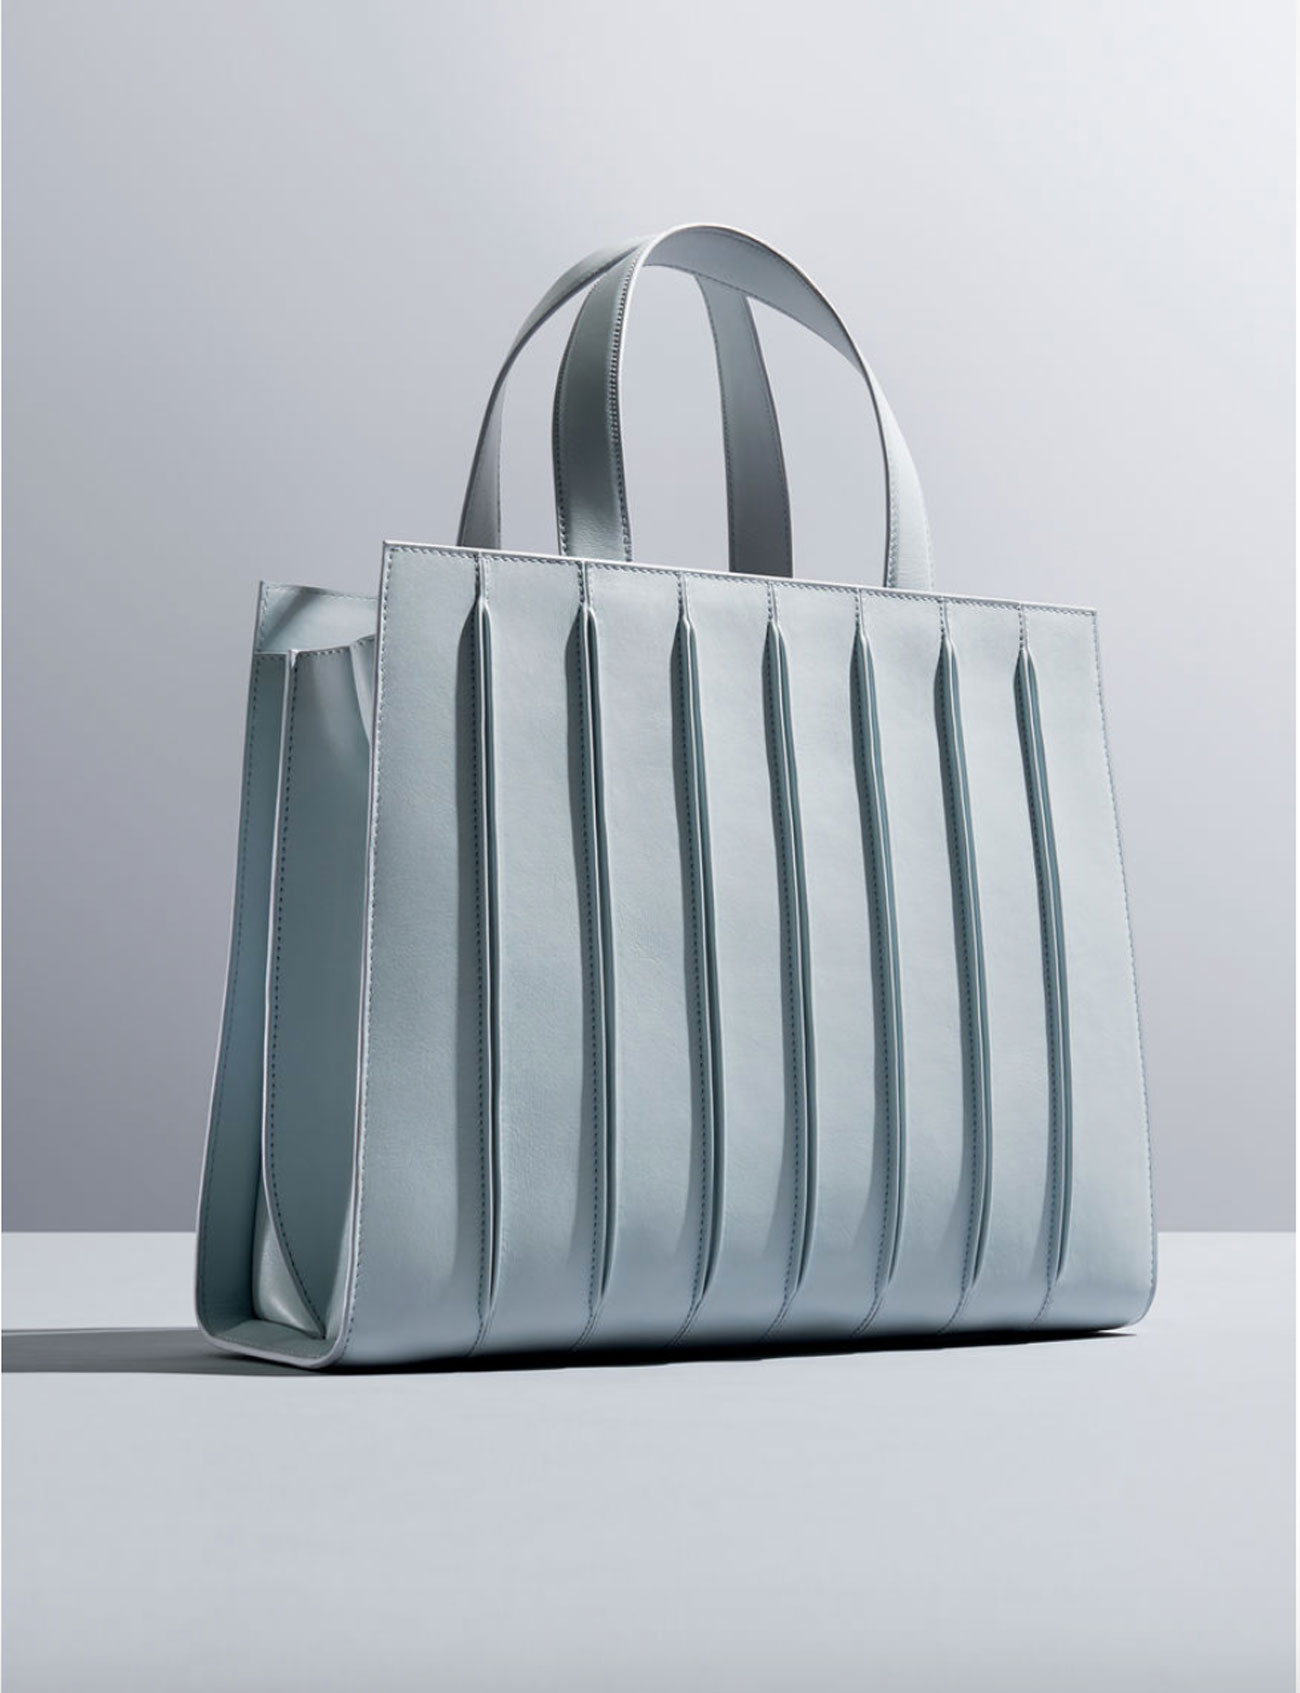 whitney-bag-max-mara-renzo-piano